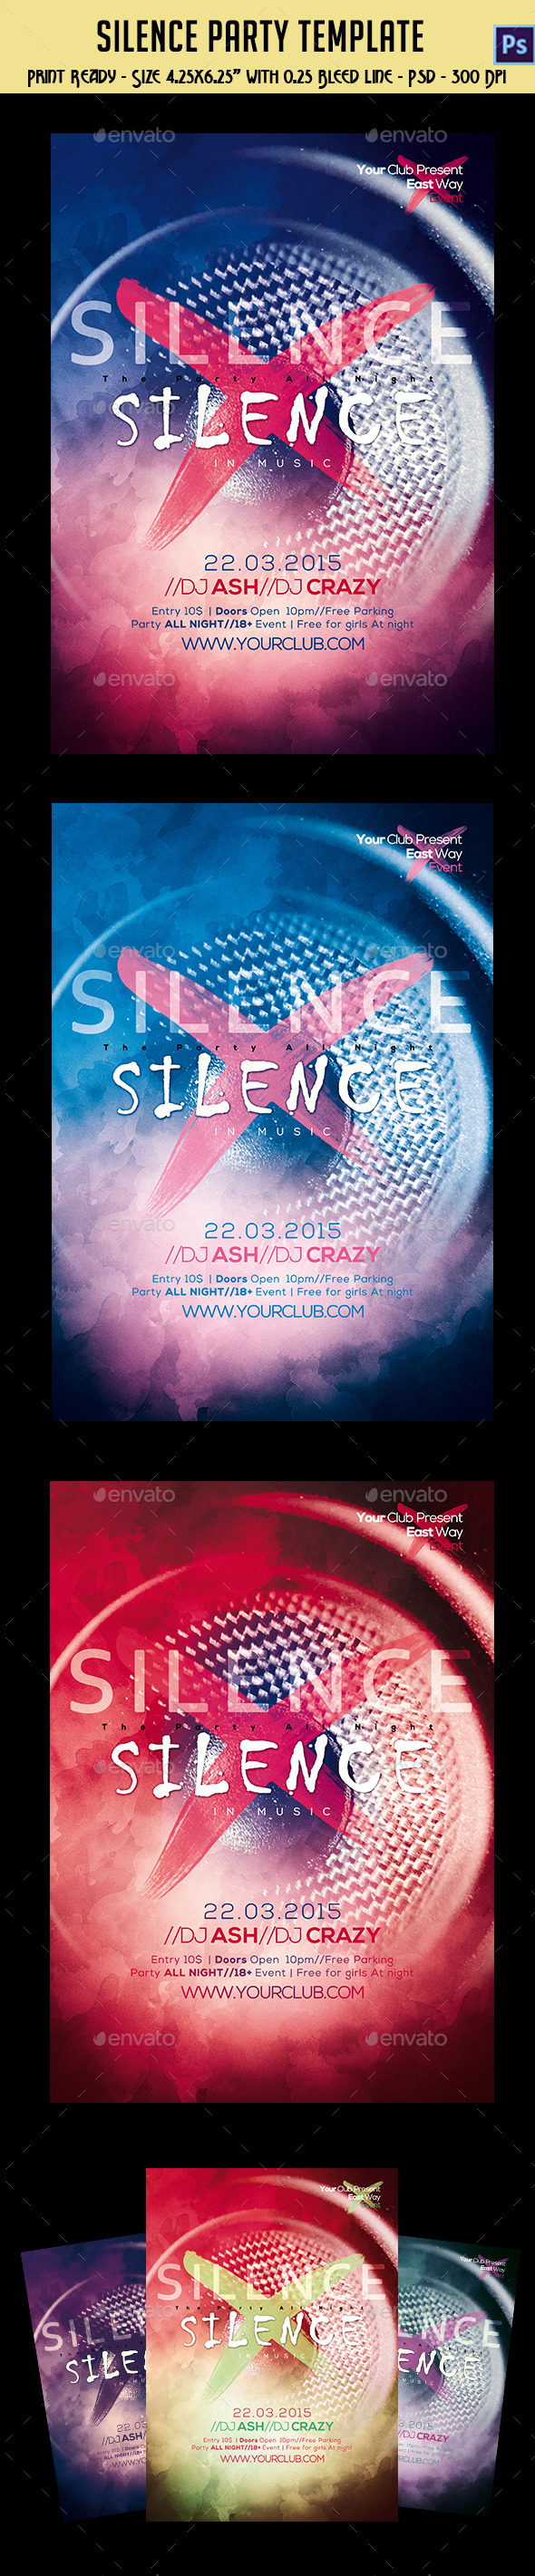 Silence Party Flyer Template - Clubs & Parties Events